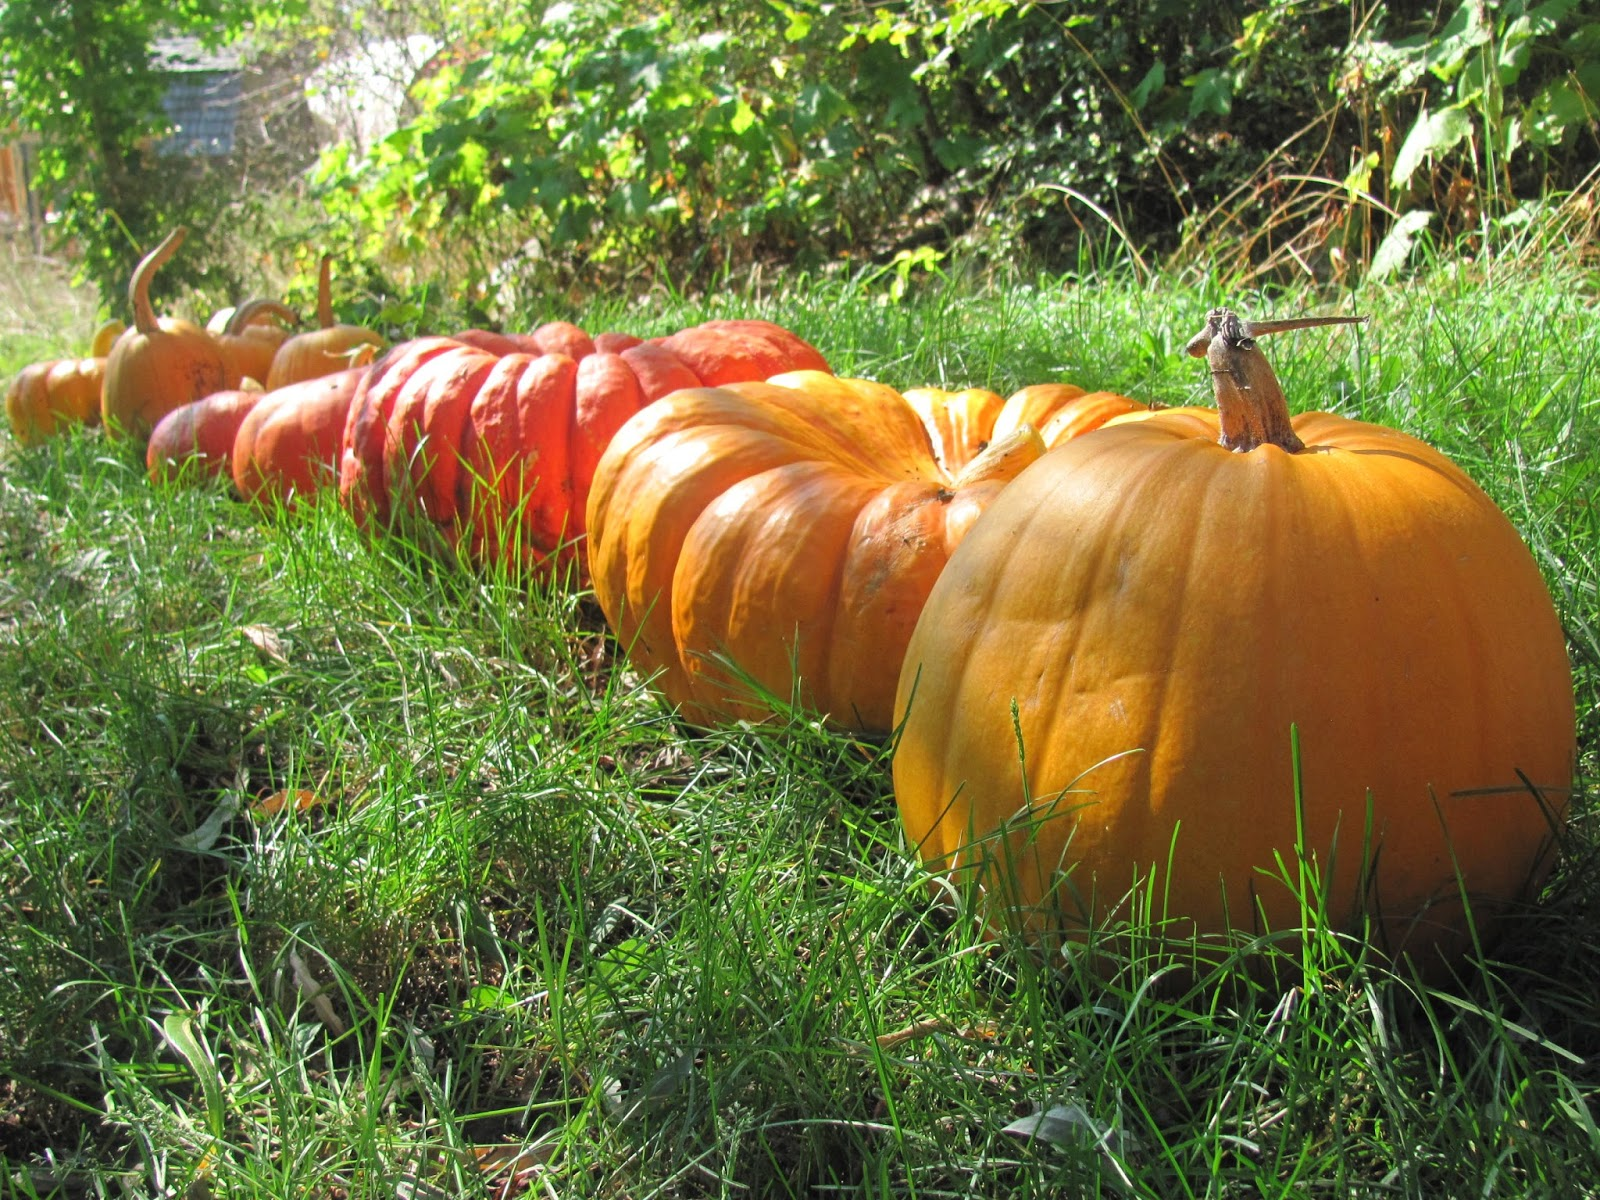 Growing pumpkins for kids Halloween